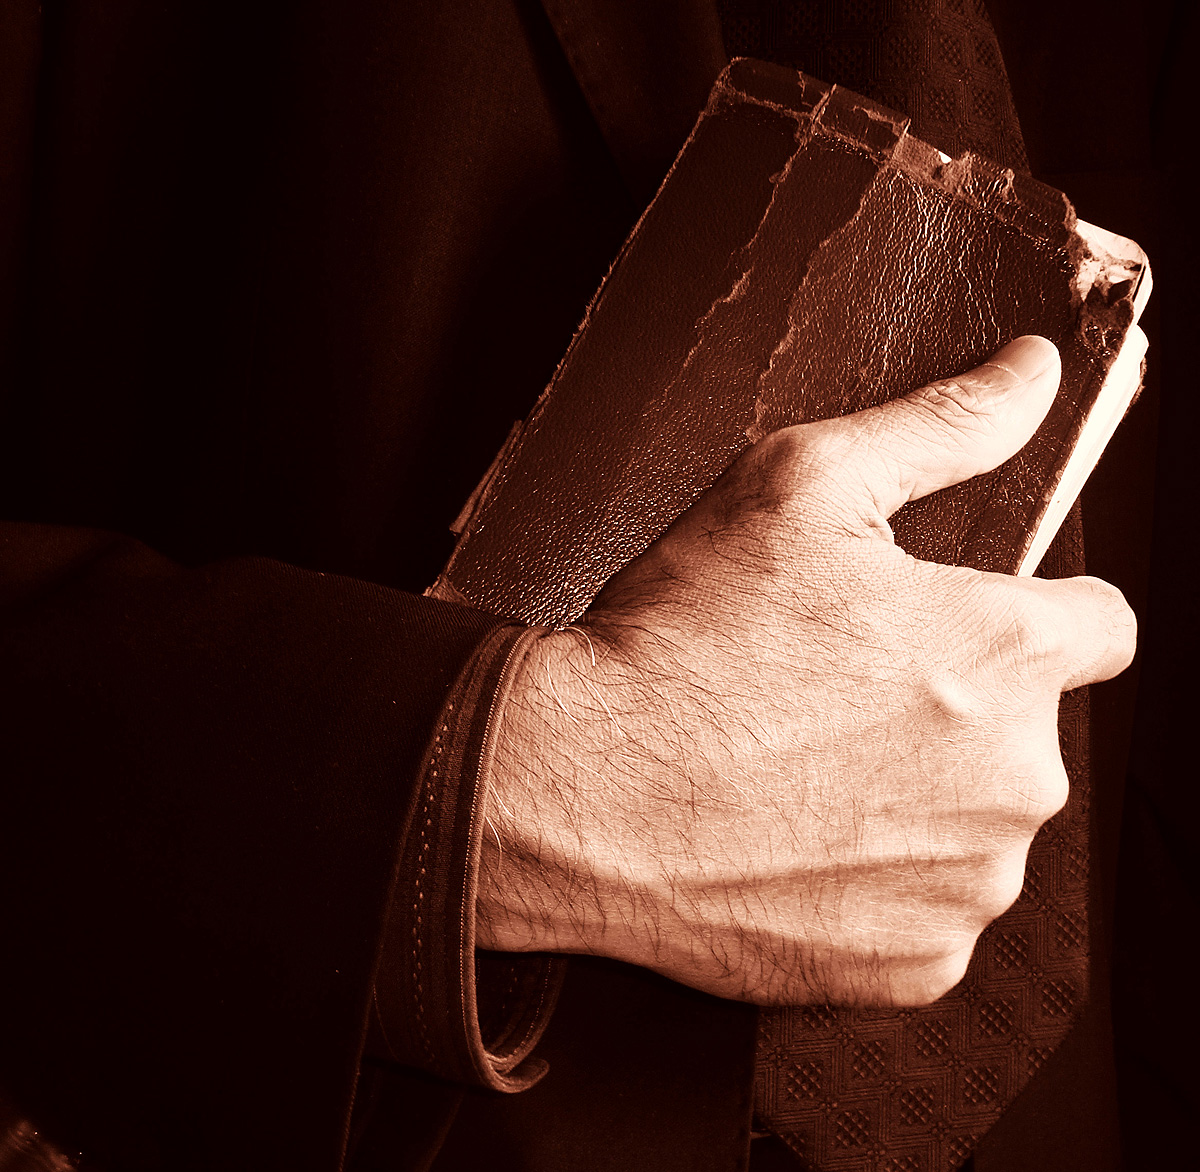 Image result for holding a worn out bible